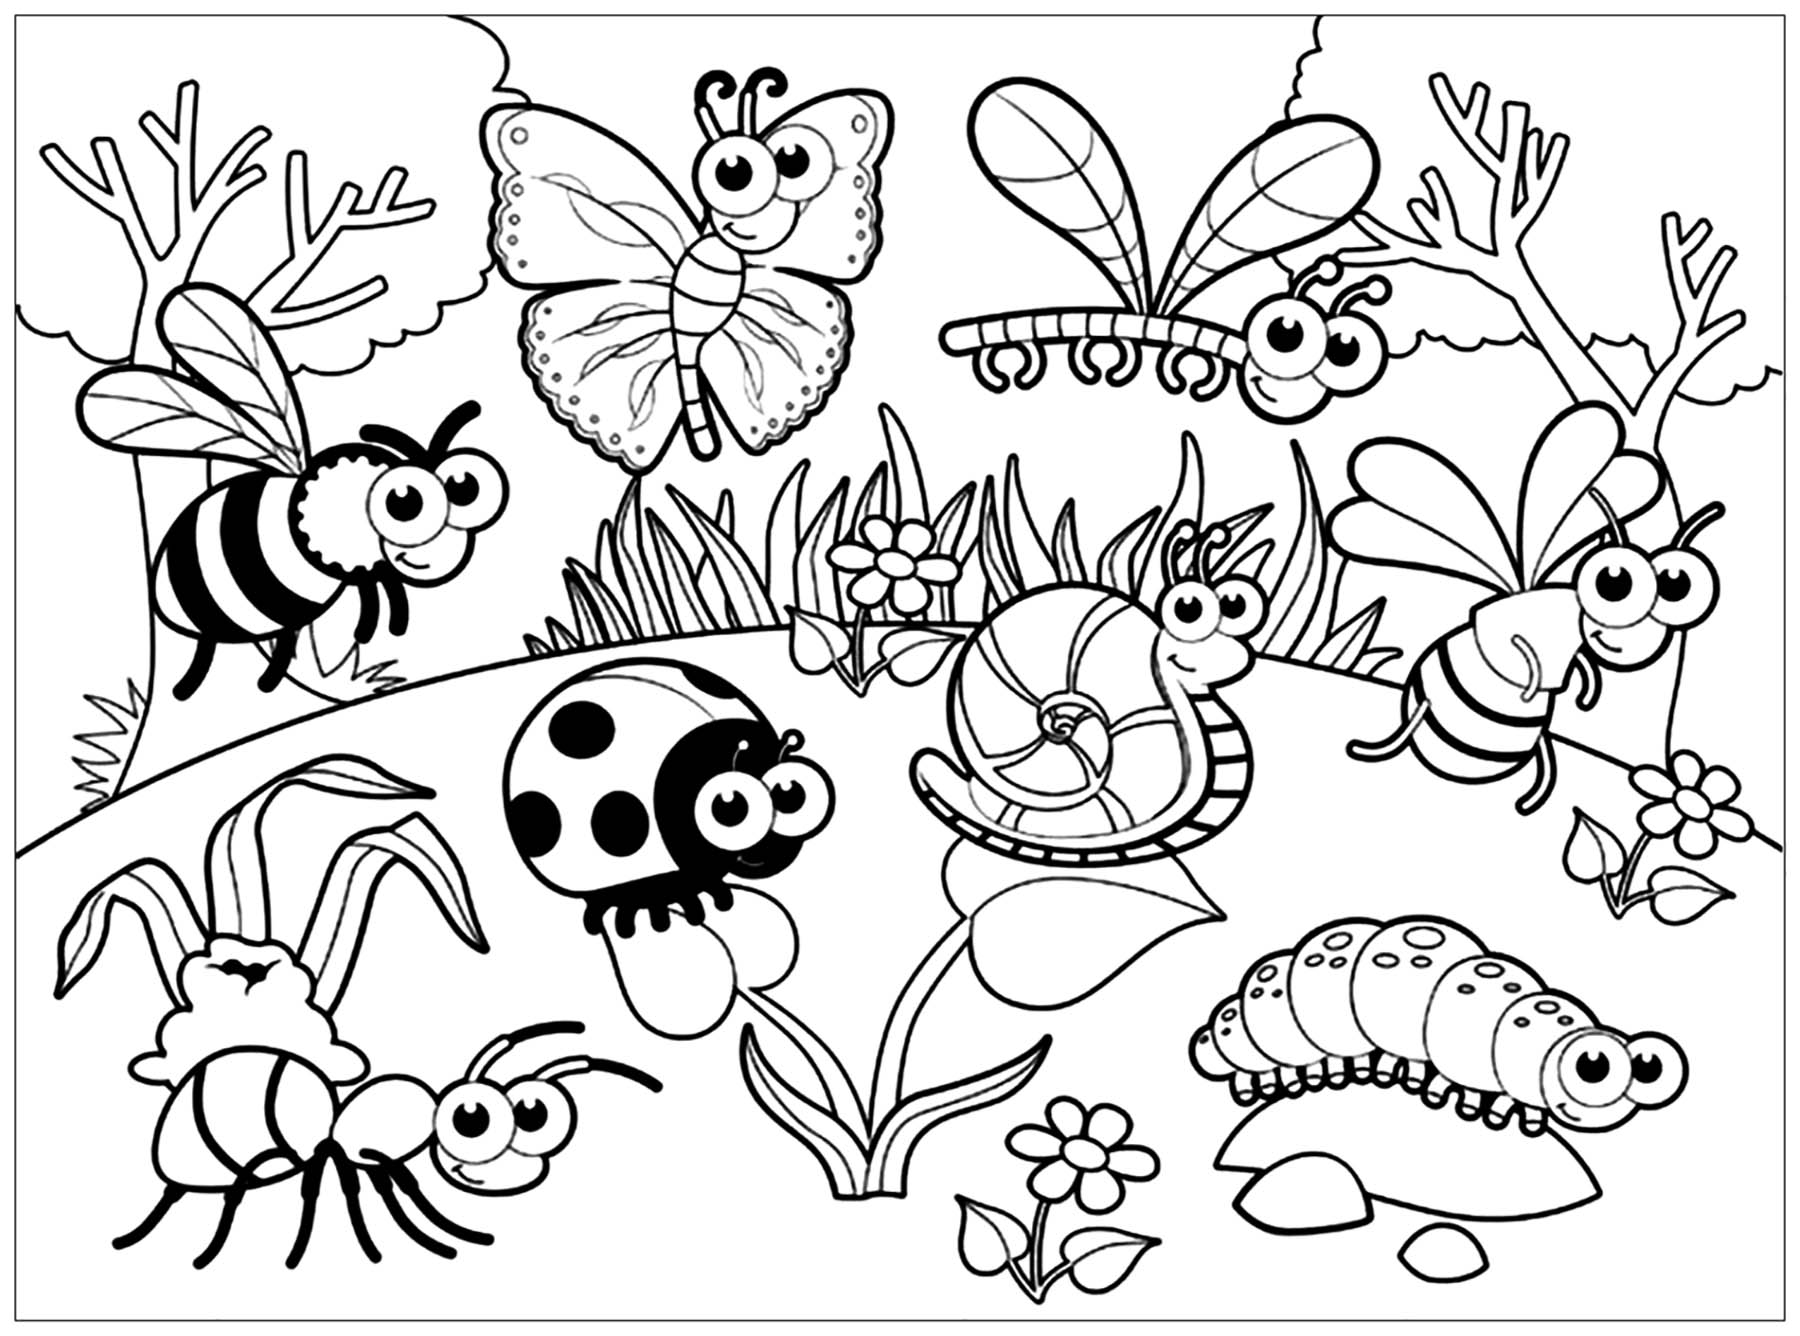 insects coloring pages insects to download insects kids coloring pages insects coloring pages